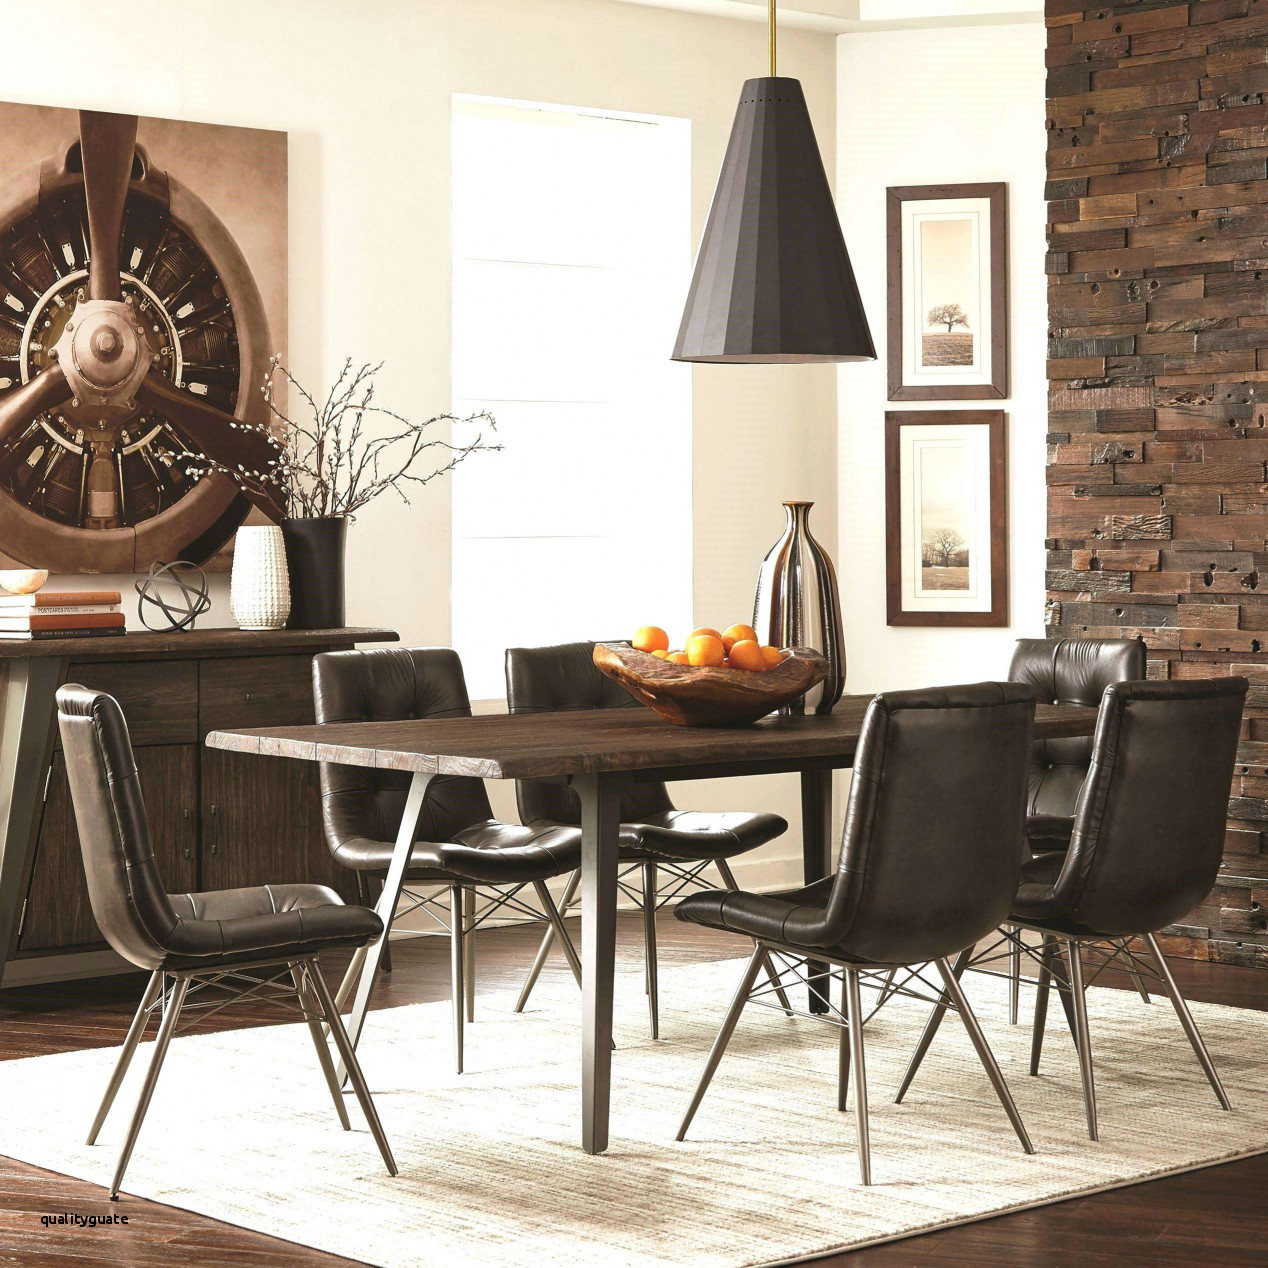 hardwood floor varieties of 33 wonderful round space saver table concept within wooden table top round fresh black round dining table best kitchen table chairs elegant dining